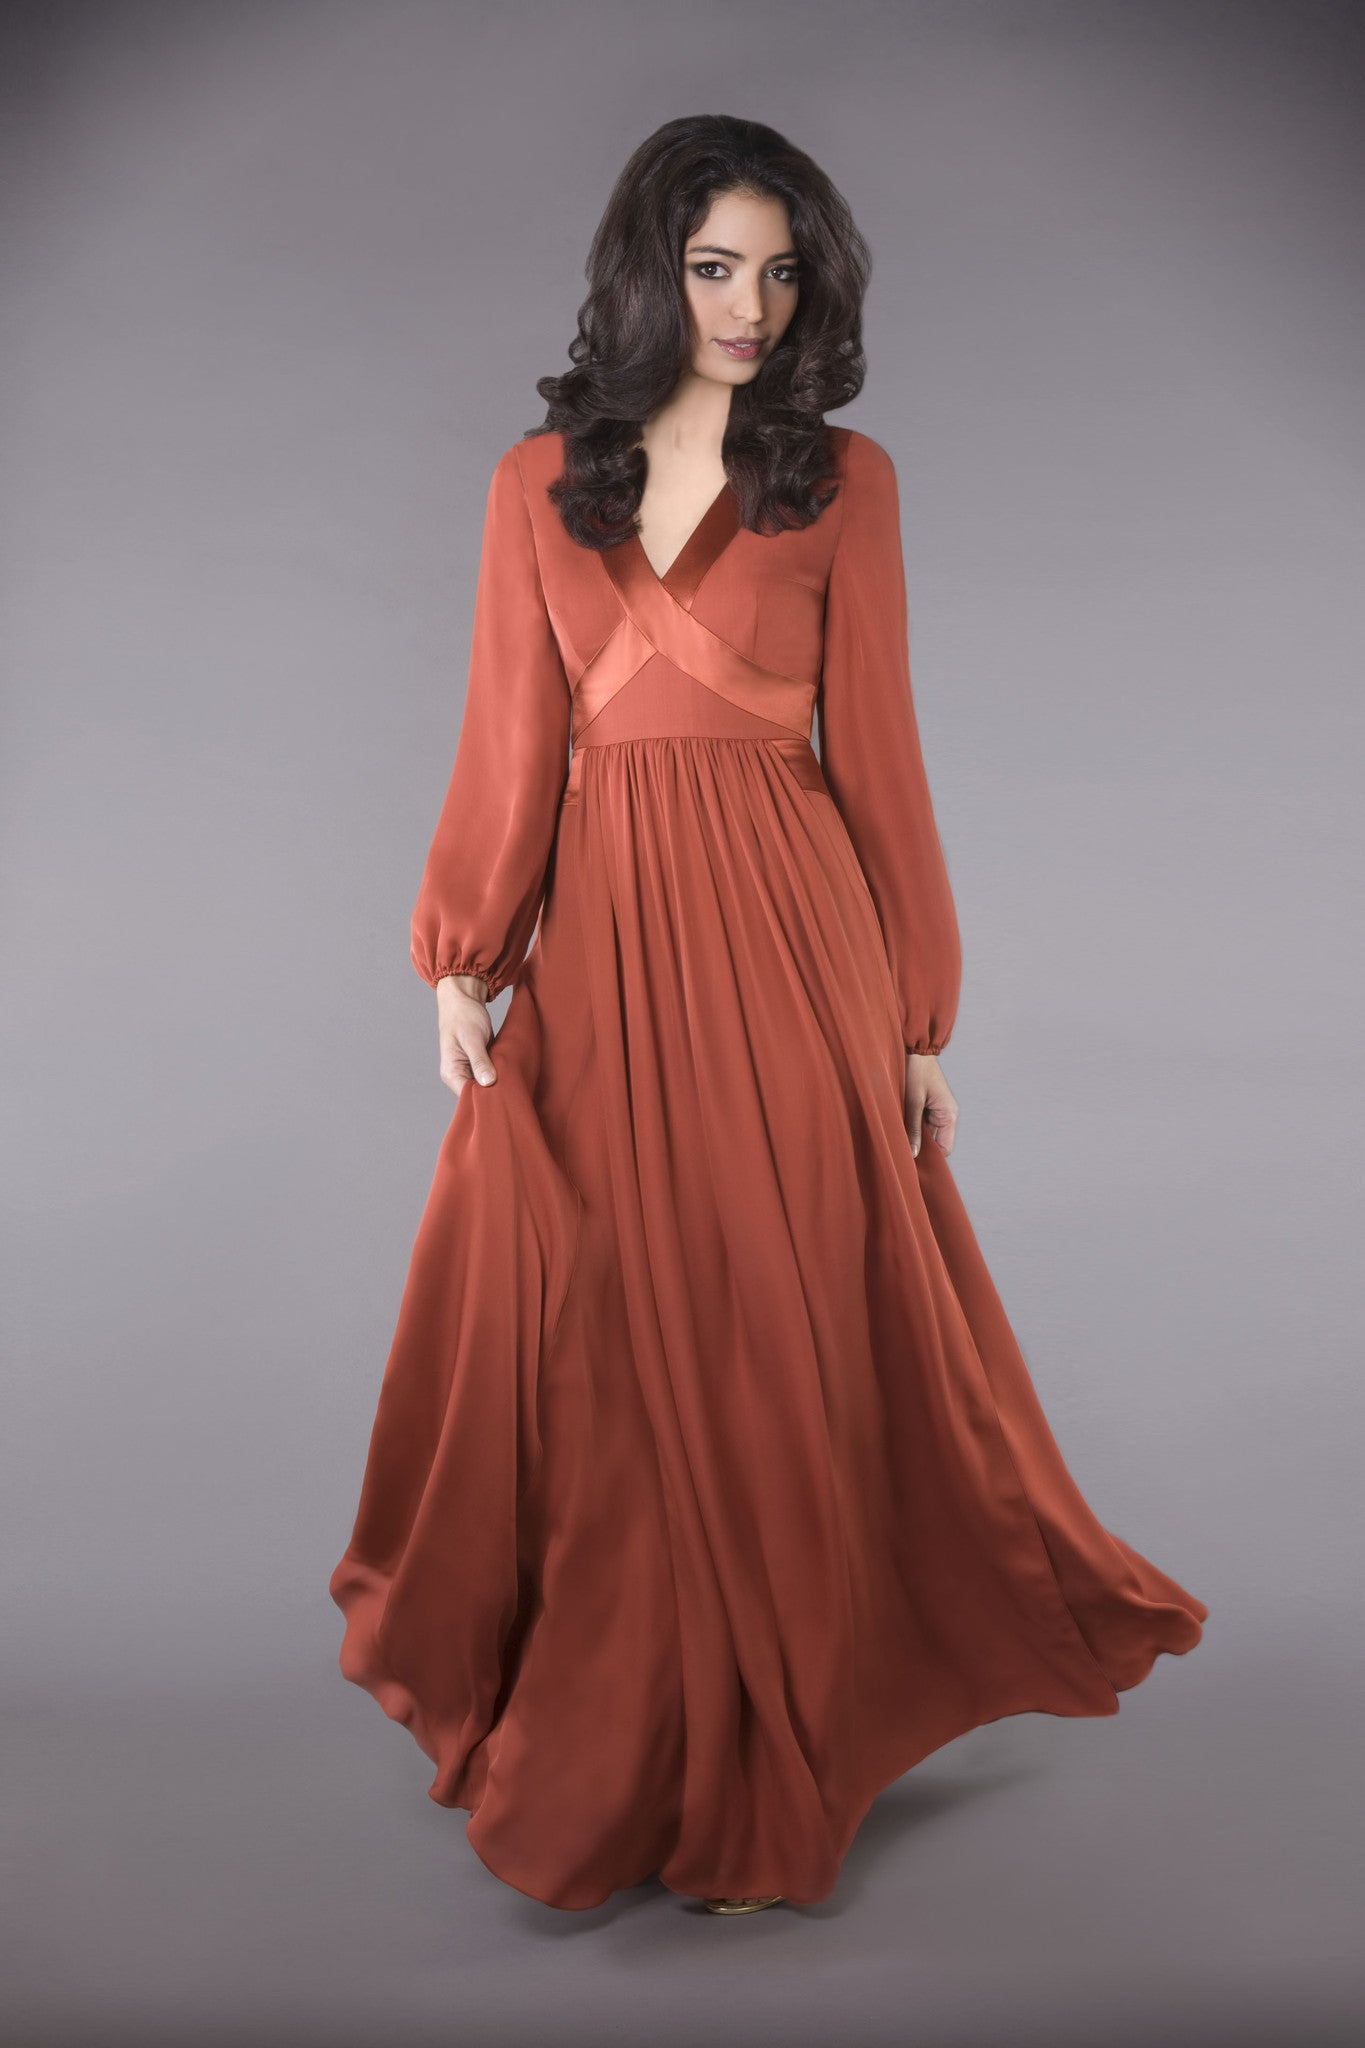 100% silk gown, long billowing sleeves, elegantly crisscrossed V-neckline, falls into a graceful hem sweep. Modest and classic